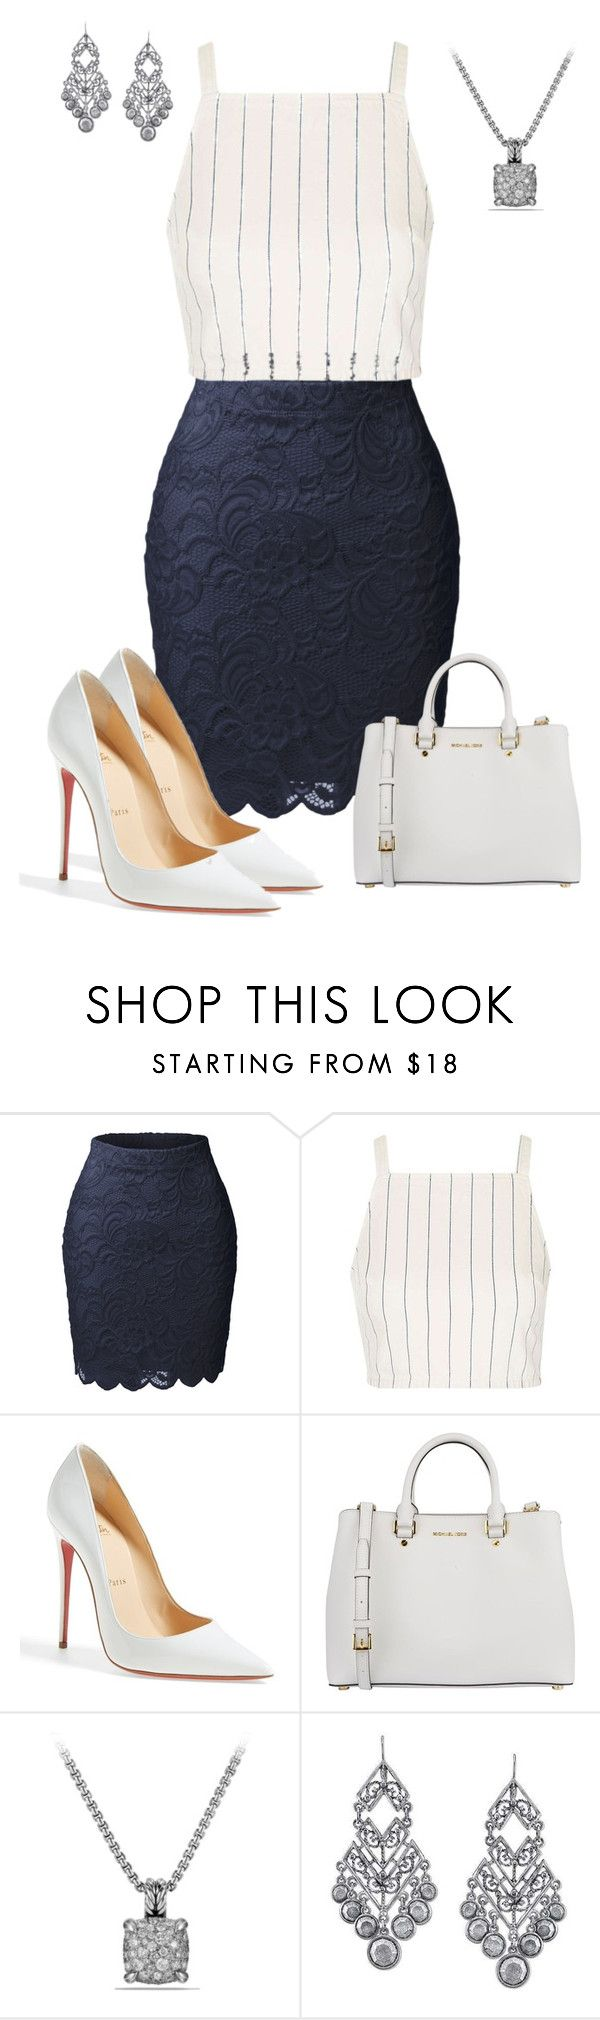 """Untitled #772"" by angela-vitello on Polyvore featuring LE3NO, Topshop, Christian Louboutin, MICHAEL Michael Kors, David Yurman and 1928"